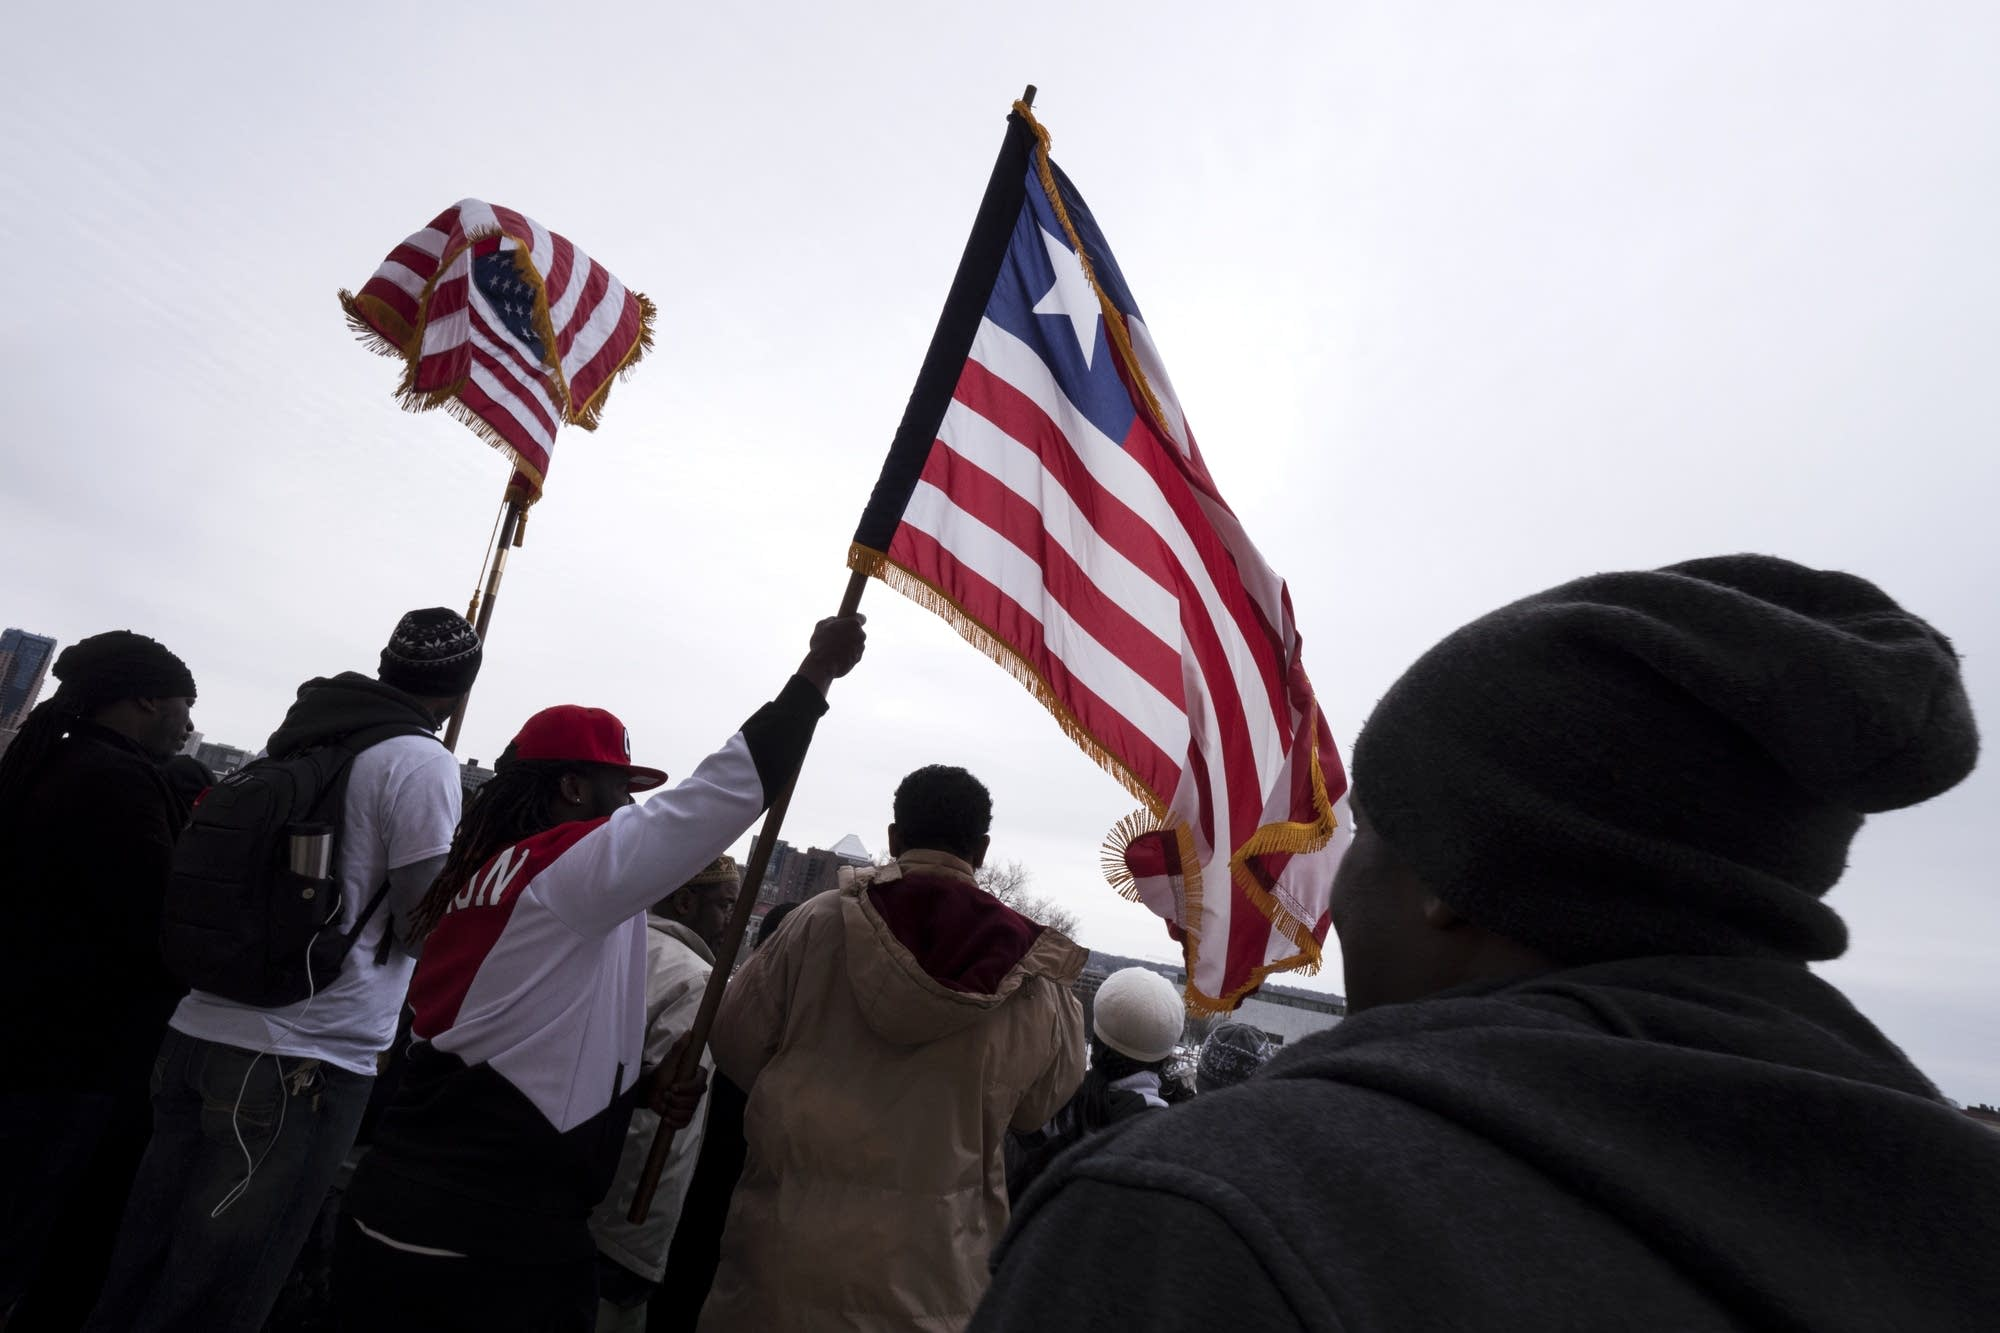 Flags of the U.S. and Liberia fly at the rally on the steps of the capitol.